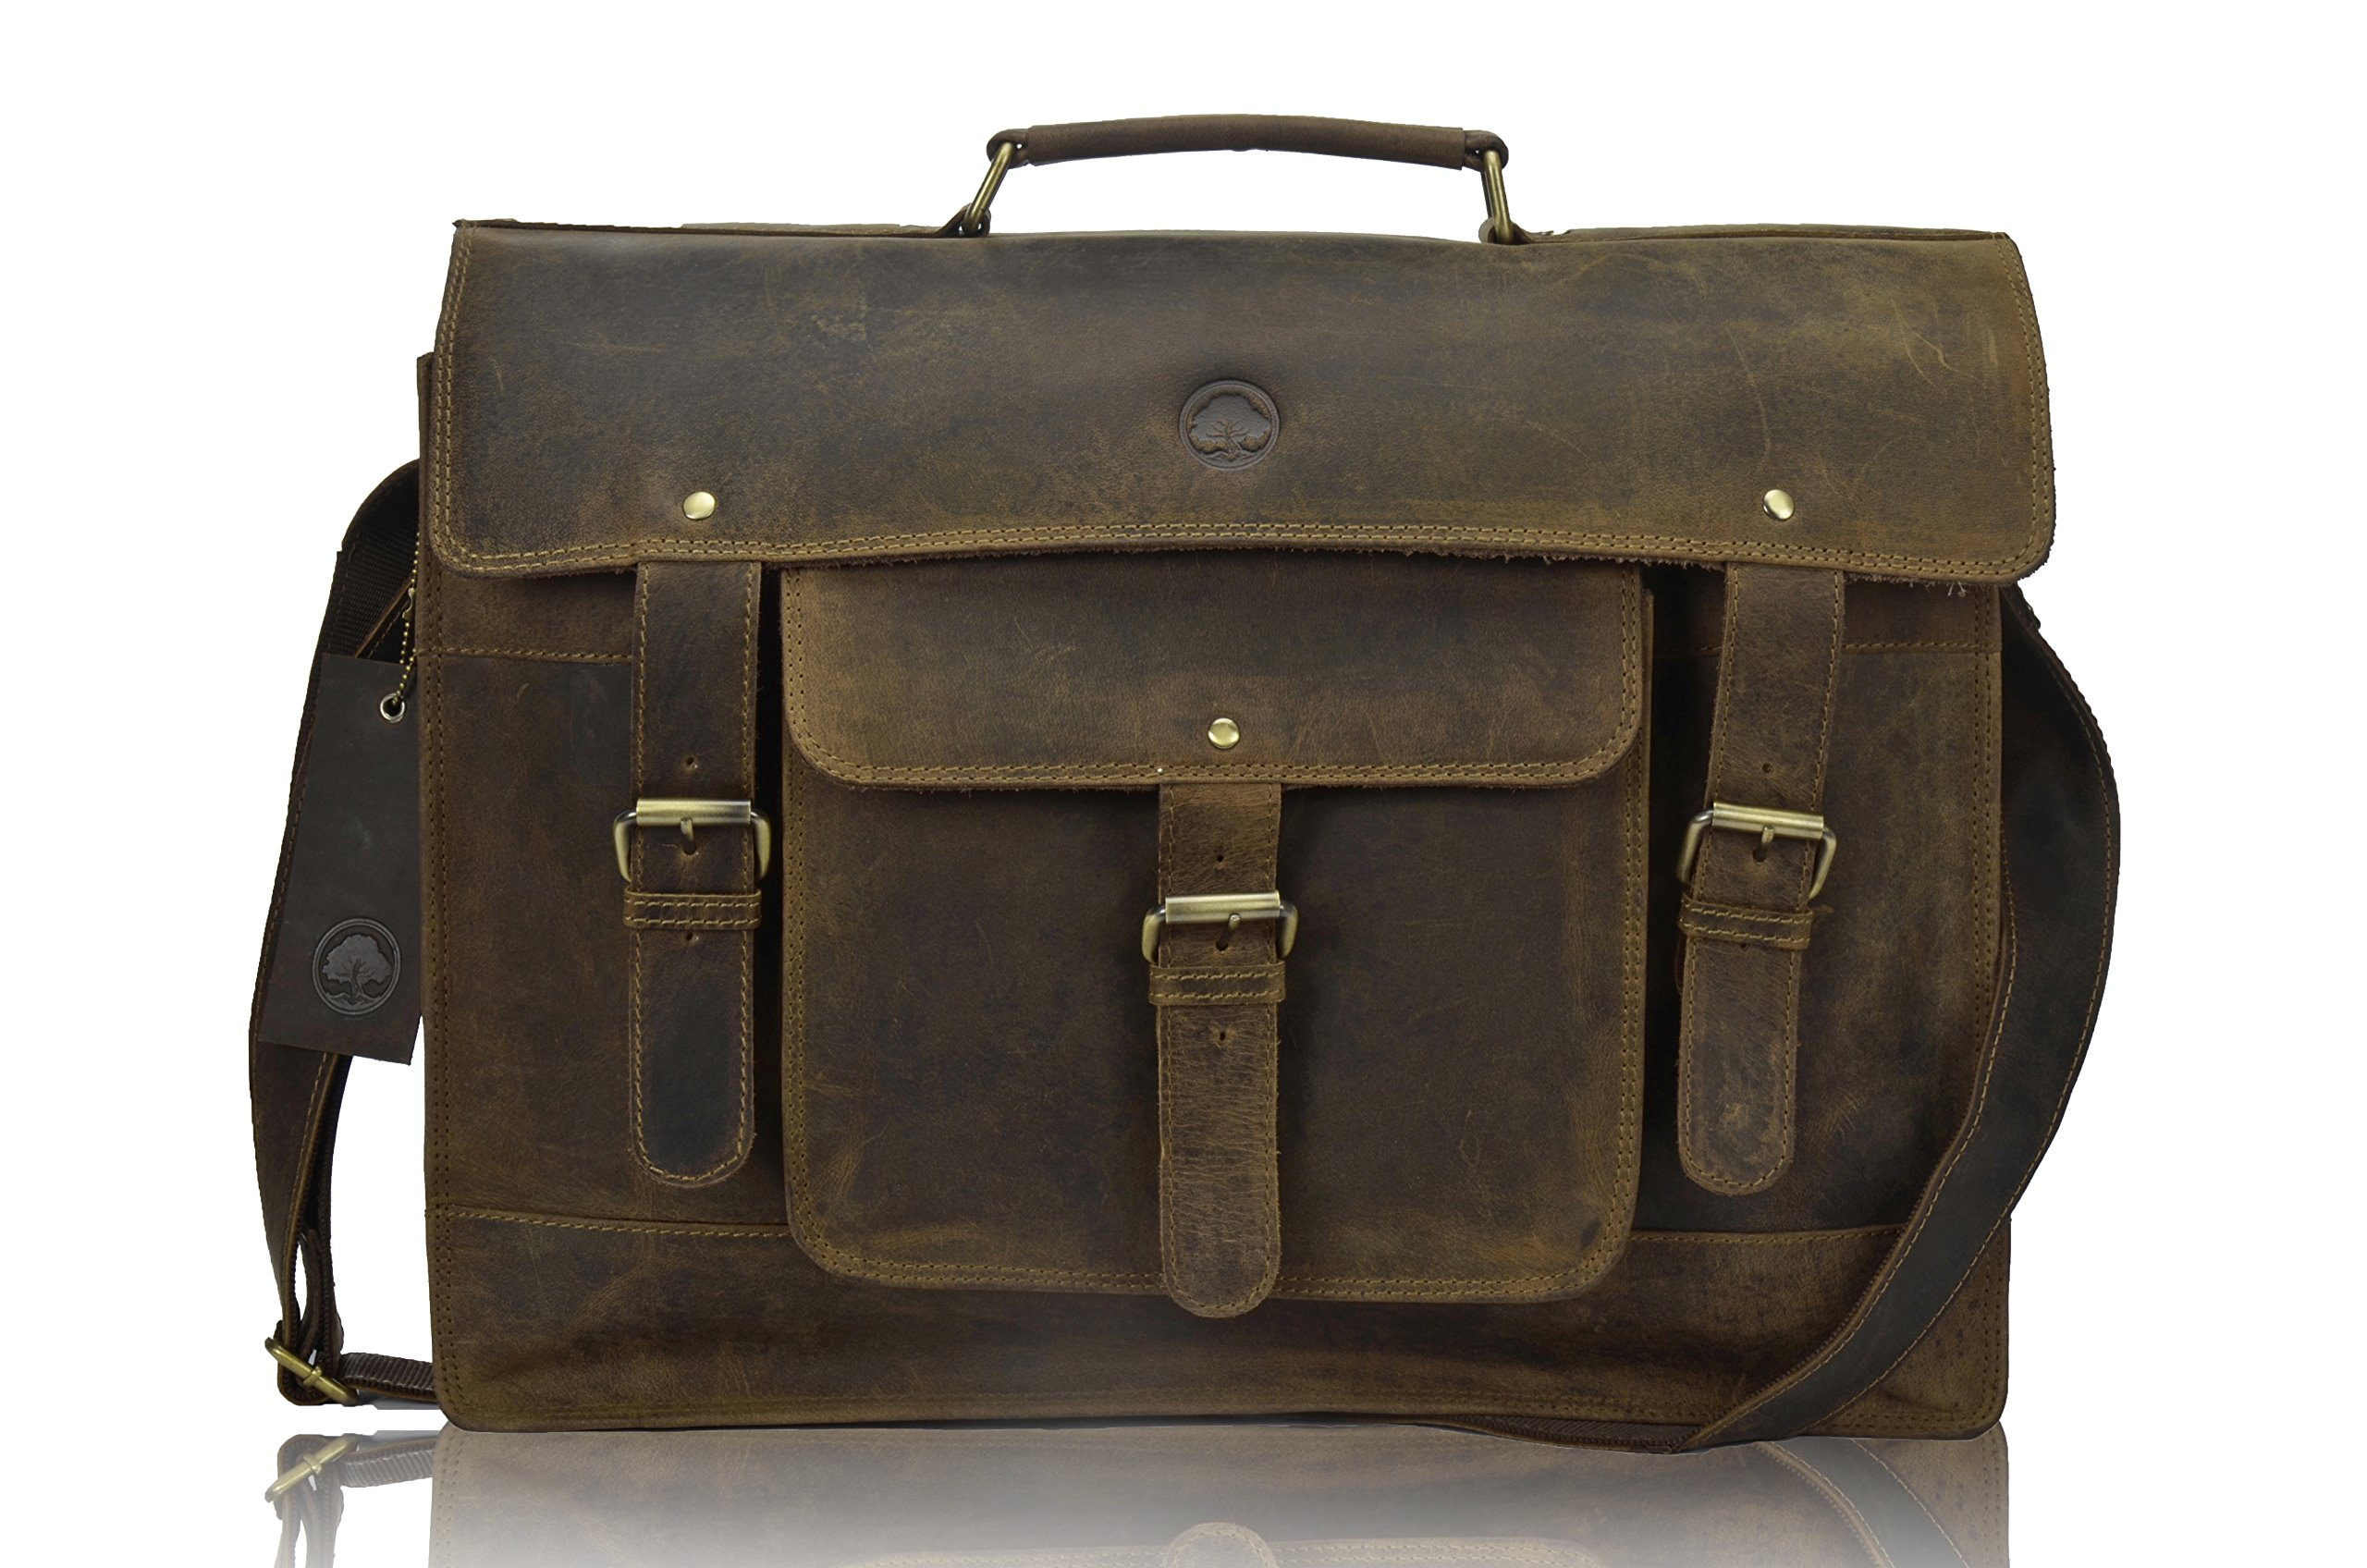 TONY'S BAGS - 18 inch Laptop bag - College Bag, Office Bag Laptop Bag Briefcase in Vintage Leather